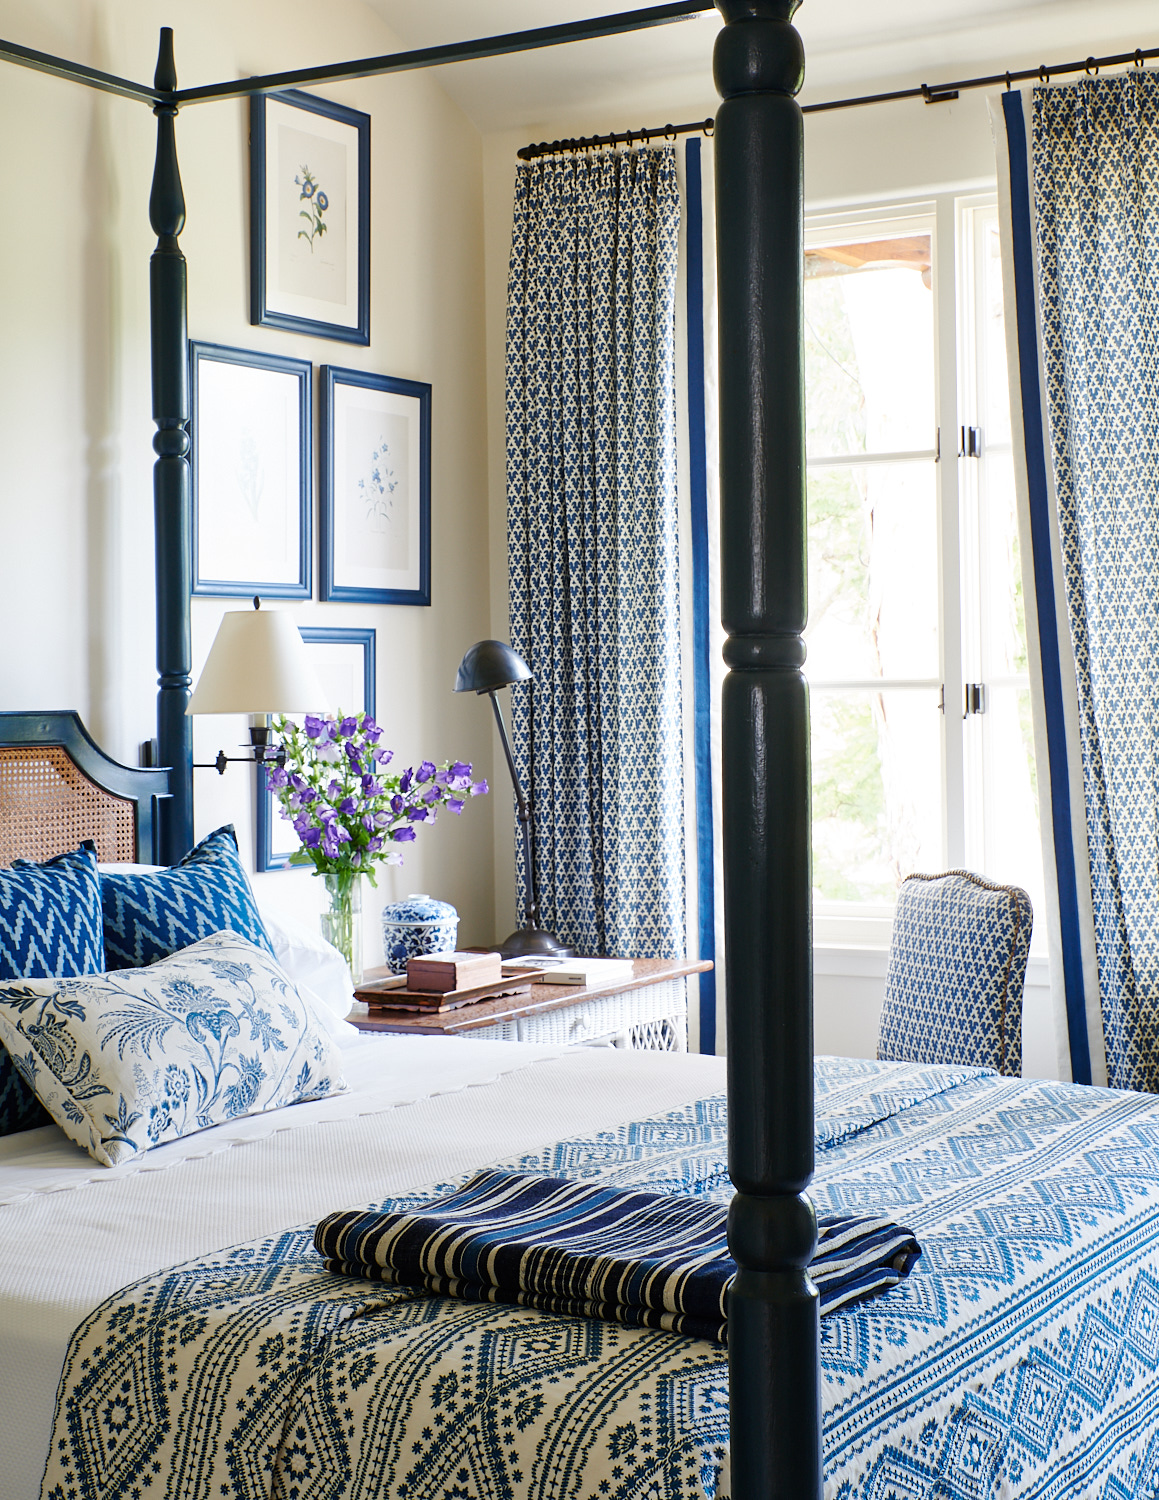 Wicker headboard with custom bed throw pillows, upholstered desk chair and matching blackout drapes